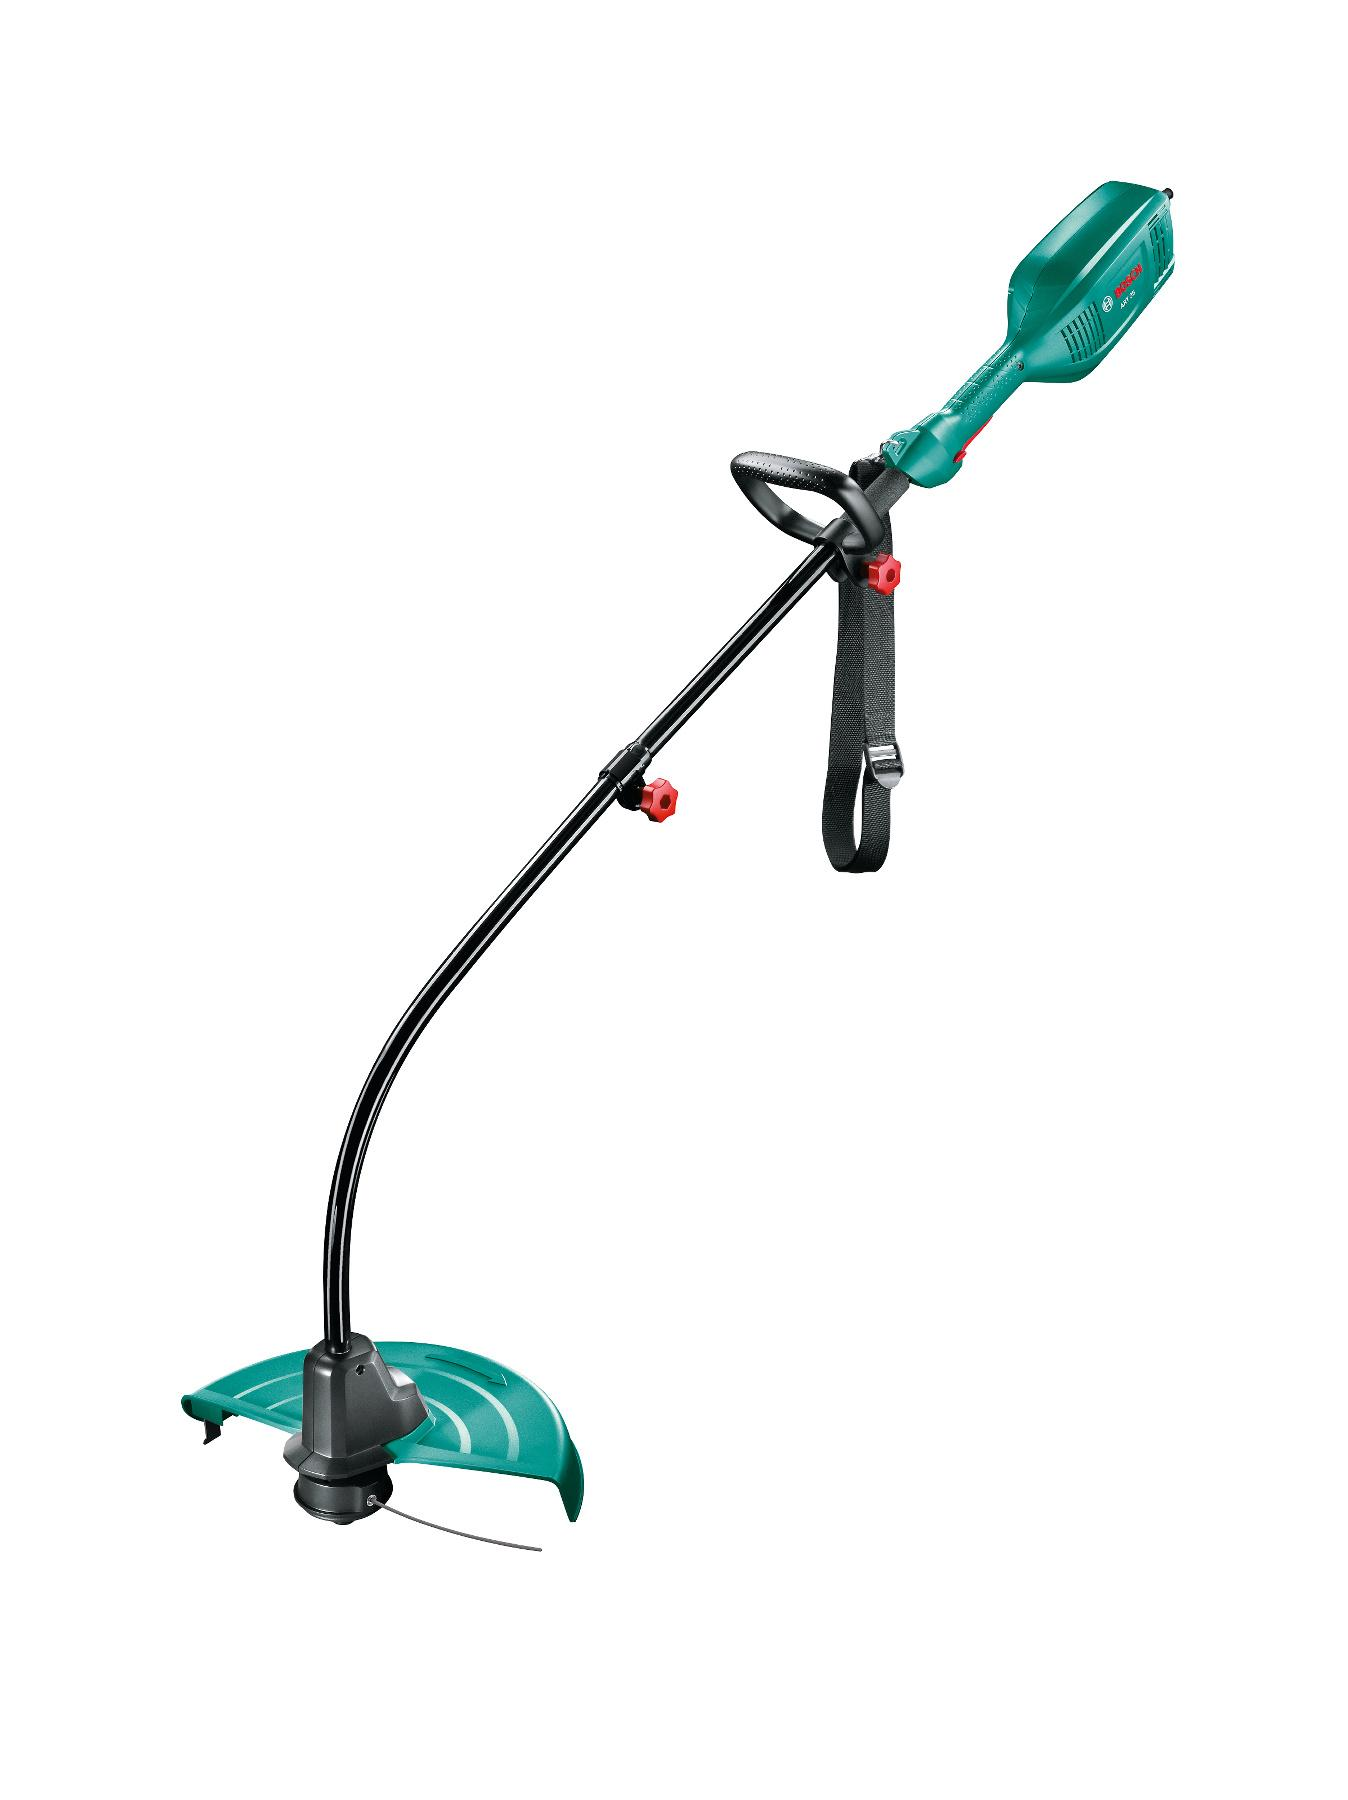 Bosch ART 35 Heavy Duty Grass Trimmer